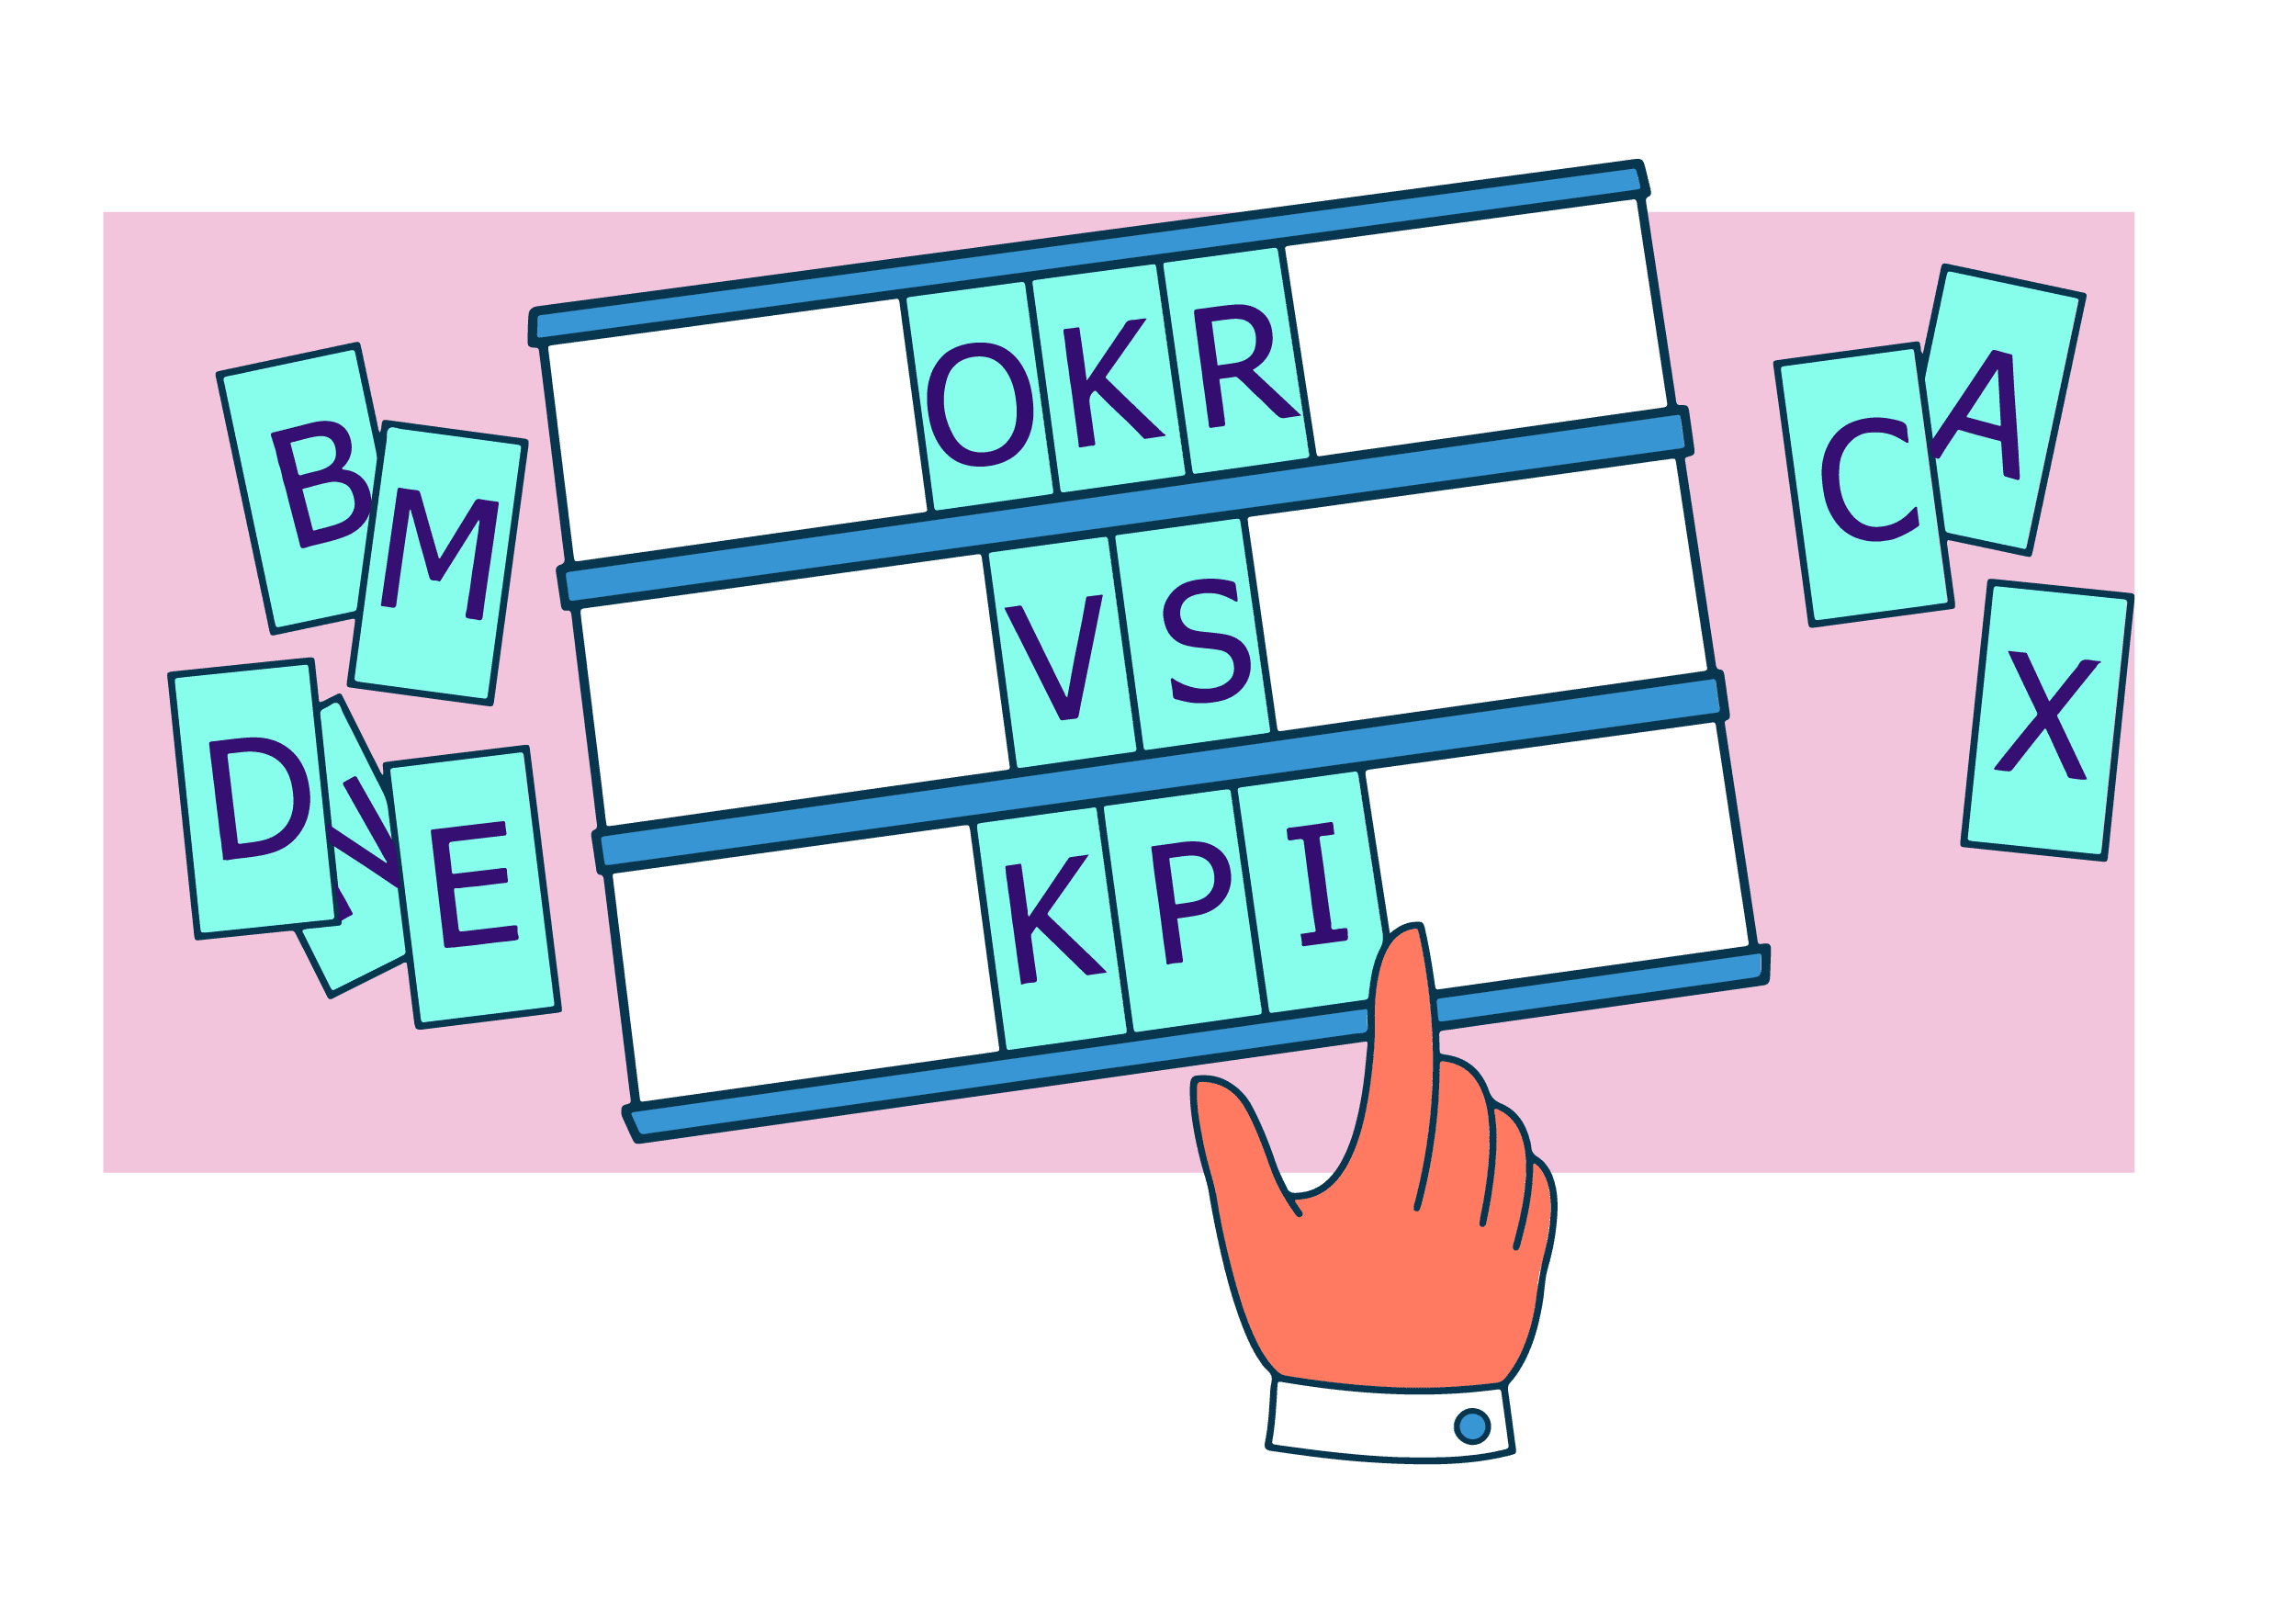 OKR vs. KPI: Why does your company need performant strategies for measuring productivity and results